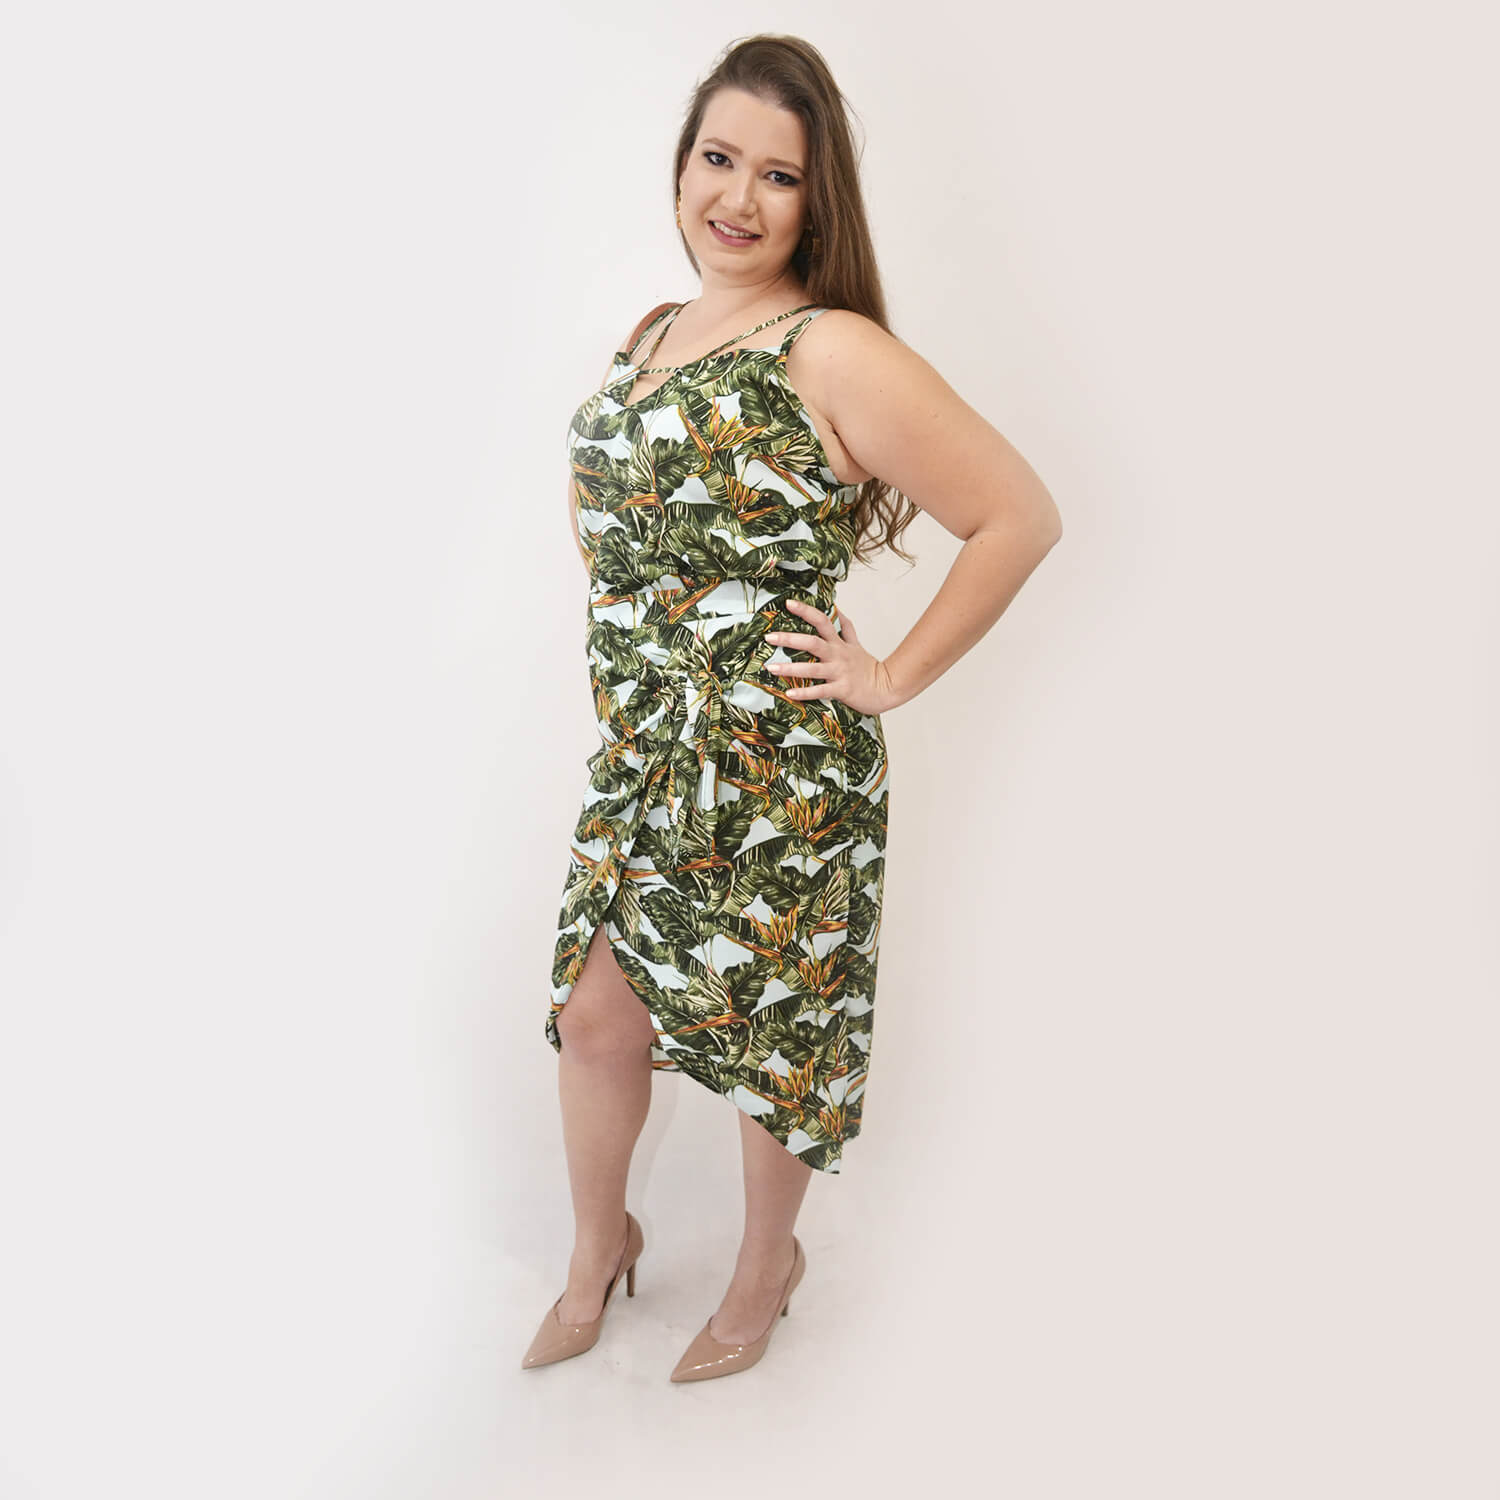 Saia Feminina Estampada Plus Size - Annual Plus